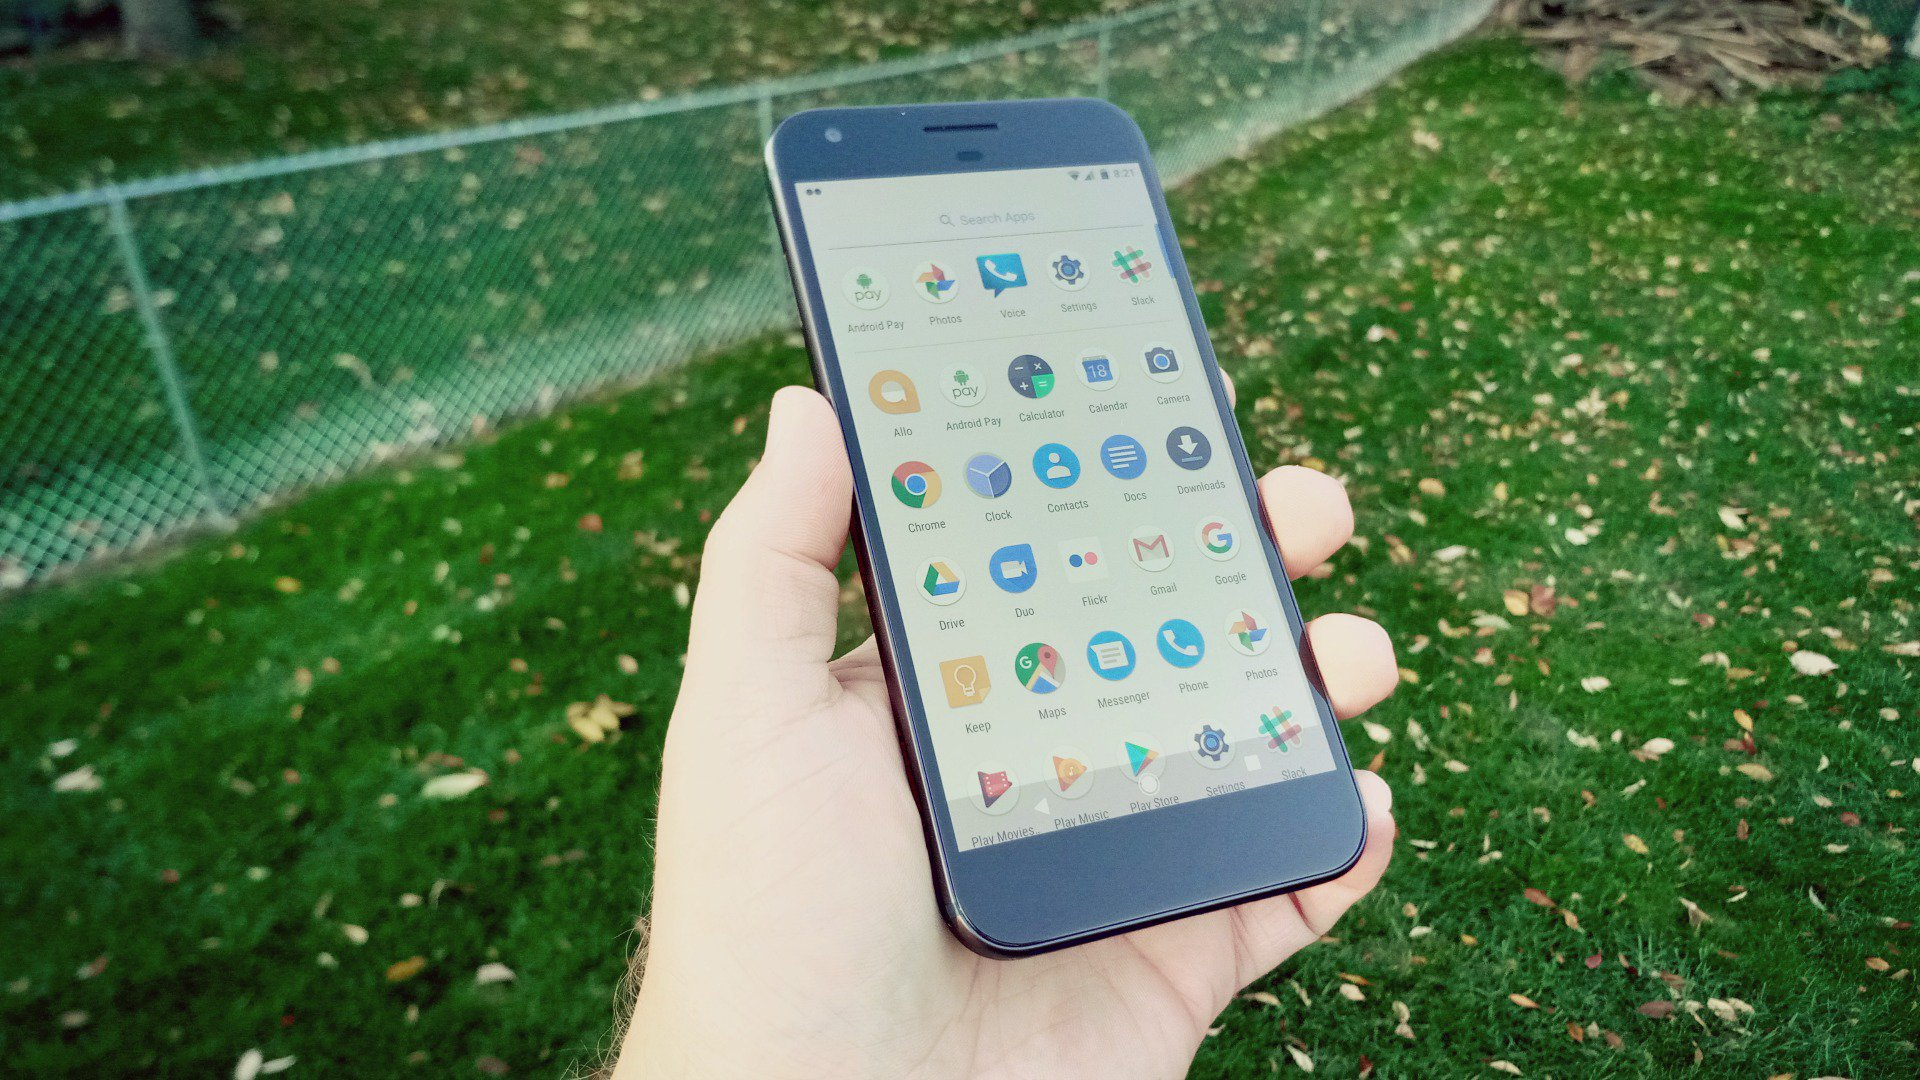 Google Pixel XL: Hands on, early impressions, and camera